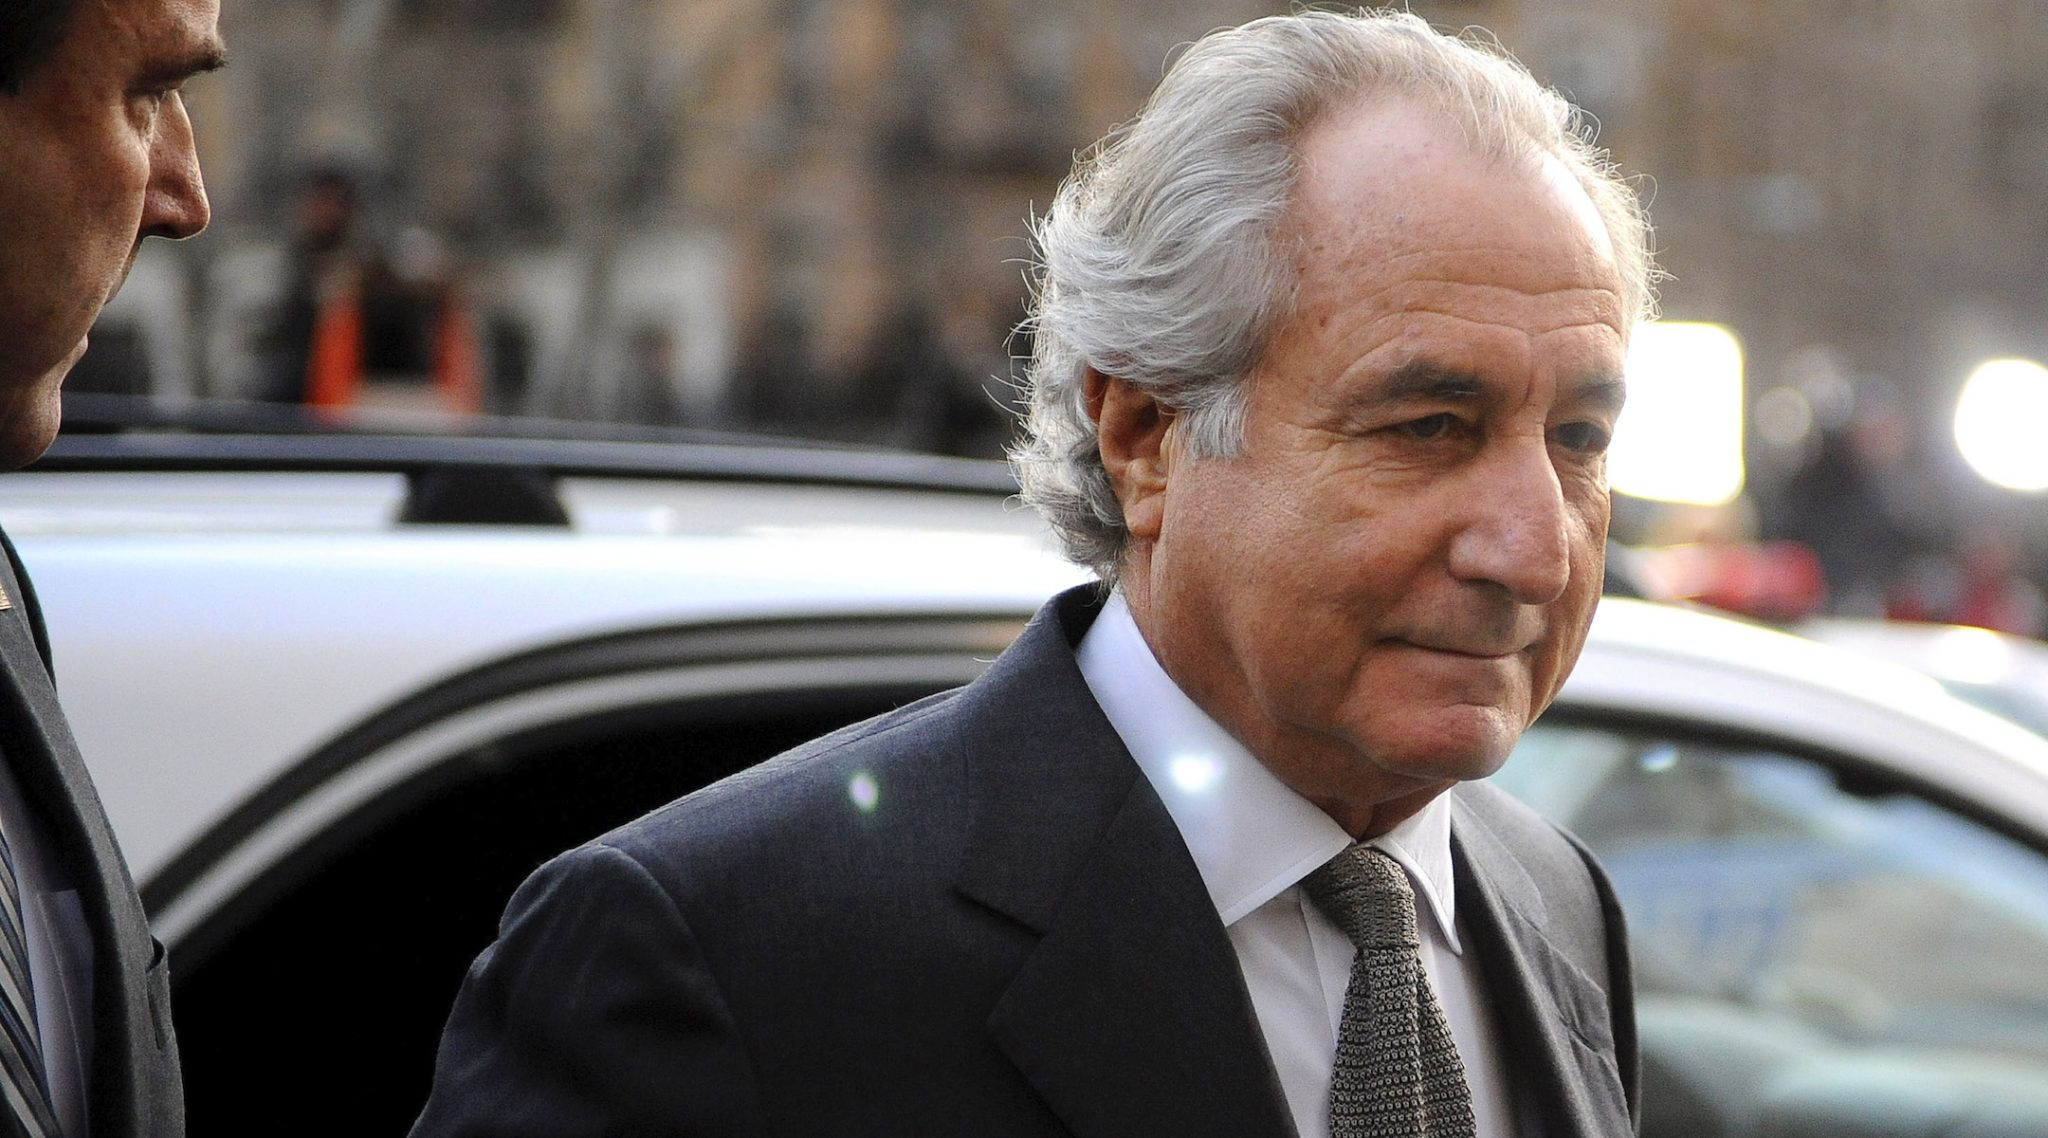 Bernie Madoff, pictured in 2009 ahead of his entering a guilty plea. (Photo/JTA-Stephen Chernin-Getty Images)